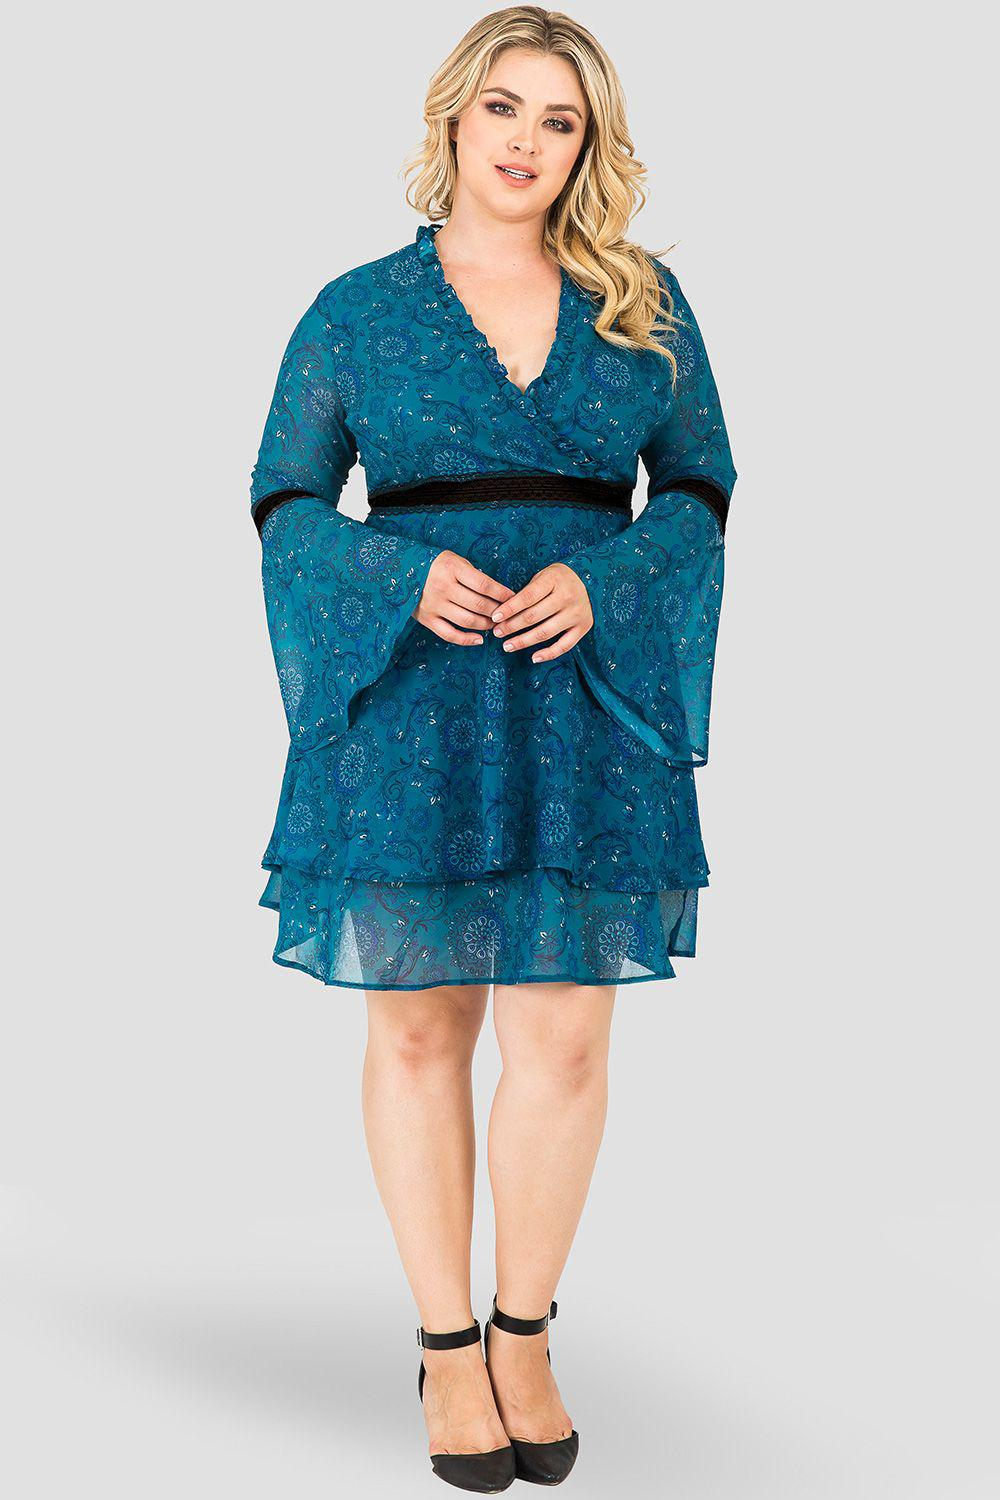 Plus Size Etsy Wrap Over Flared Sleeves Tiered Skirt with Velvet Trim Dress